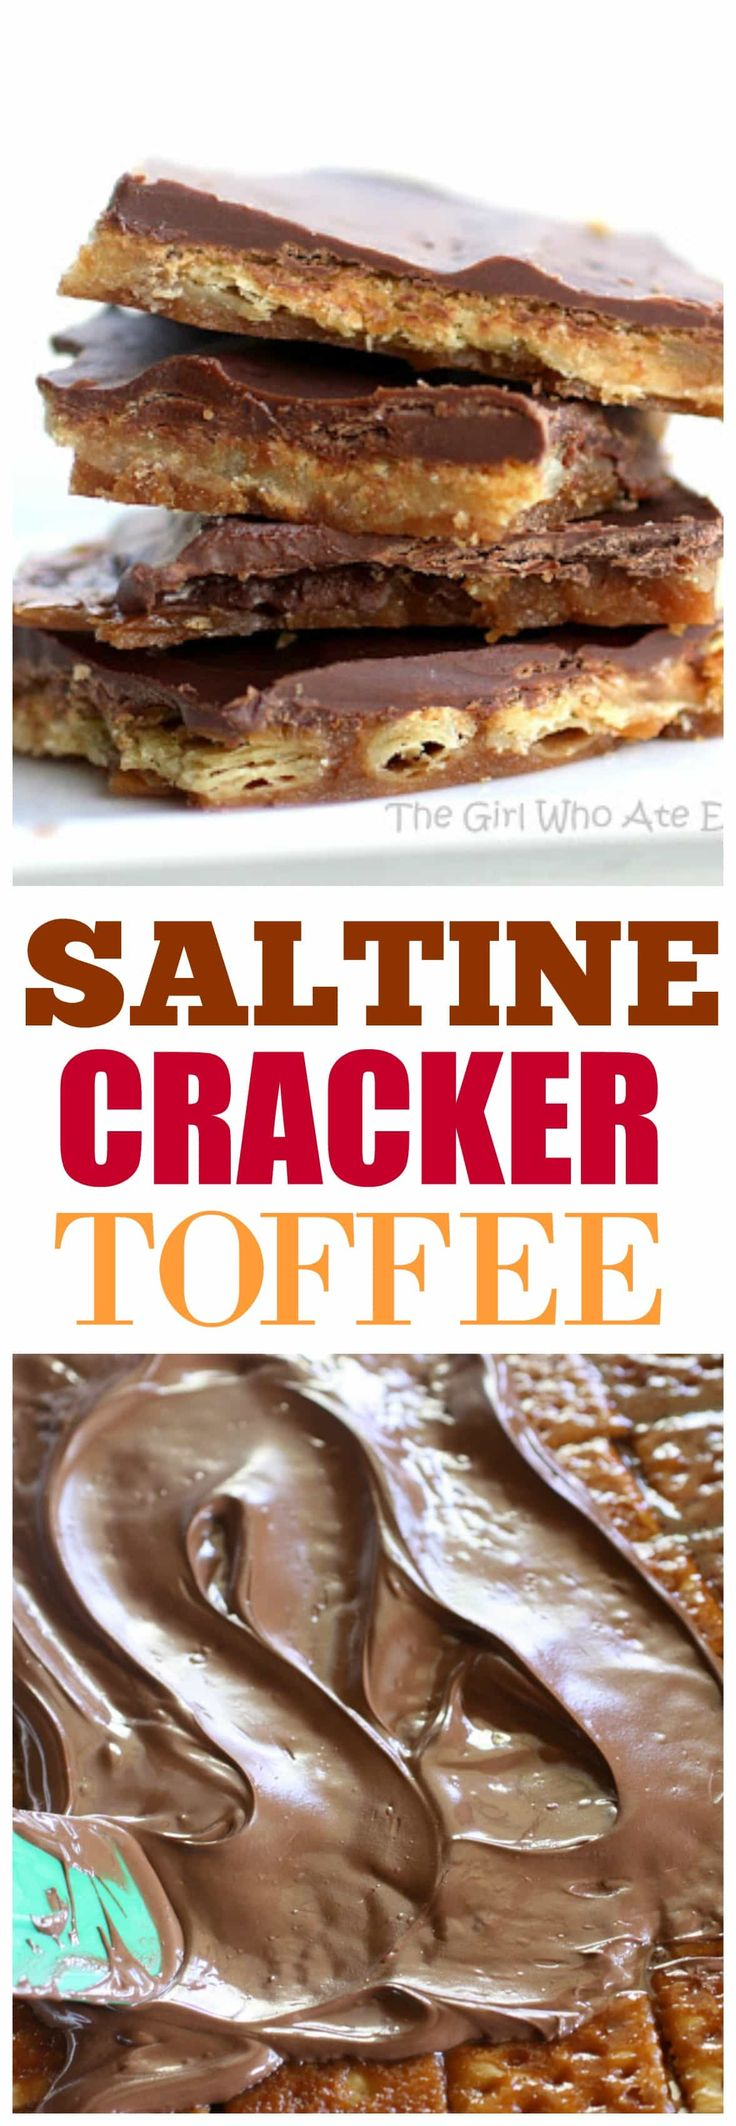 Saltine Cracker Toffee - my grandma's recipe and it's always a crowd pleaser. the-girl-who-ate-everything.com